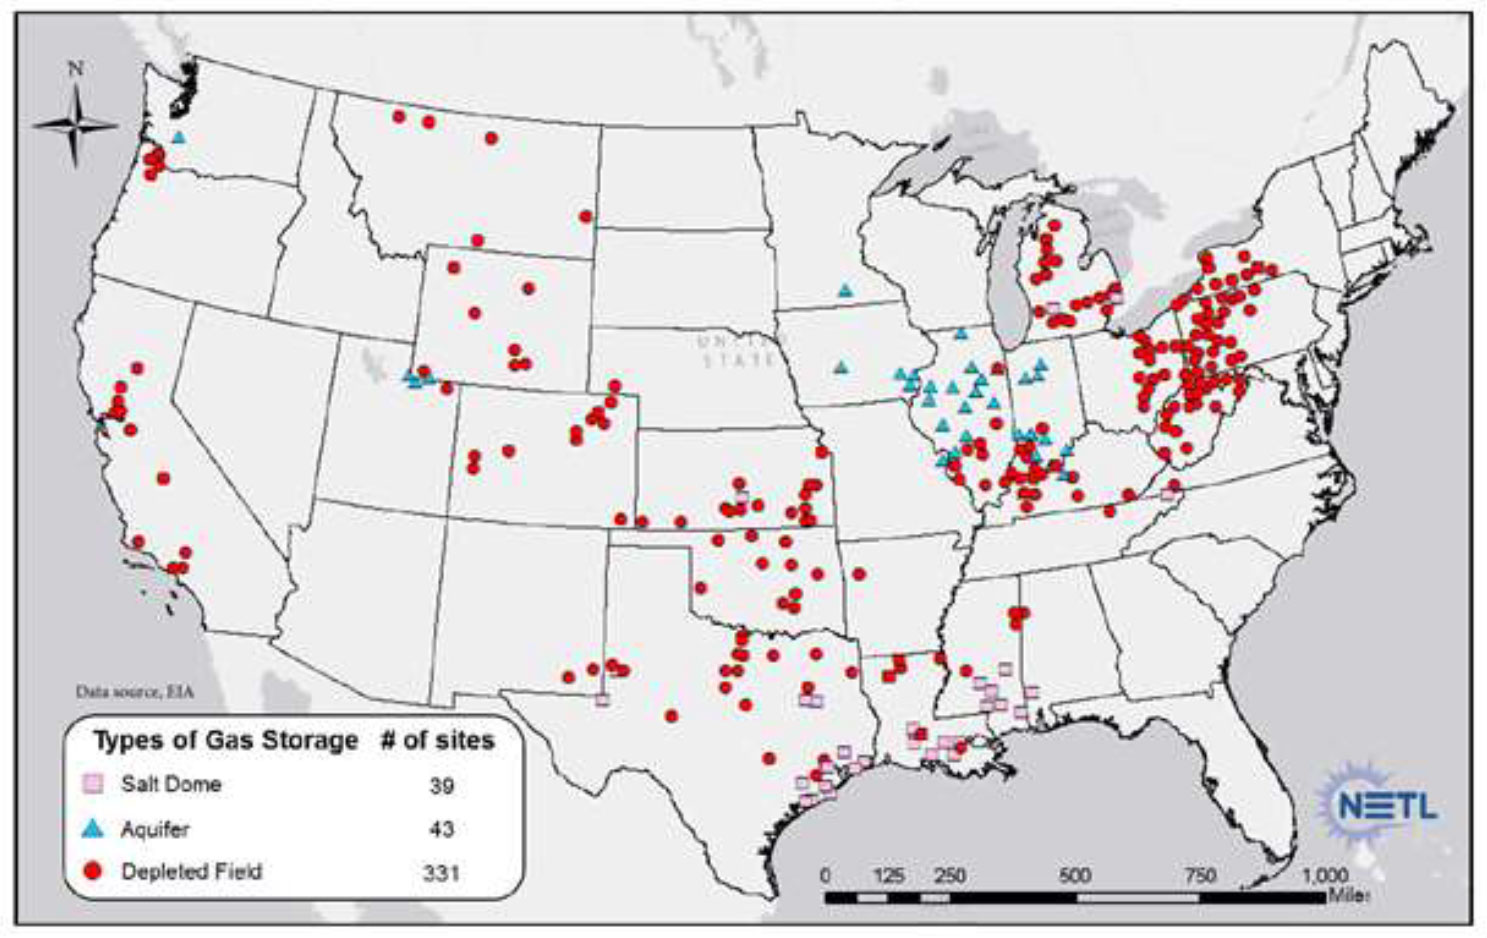 Gas storage facilities across the US